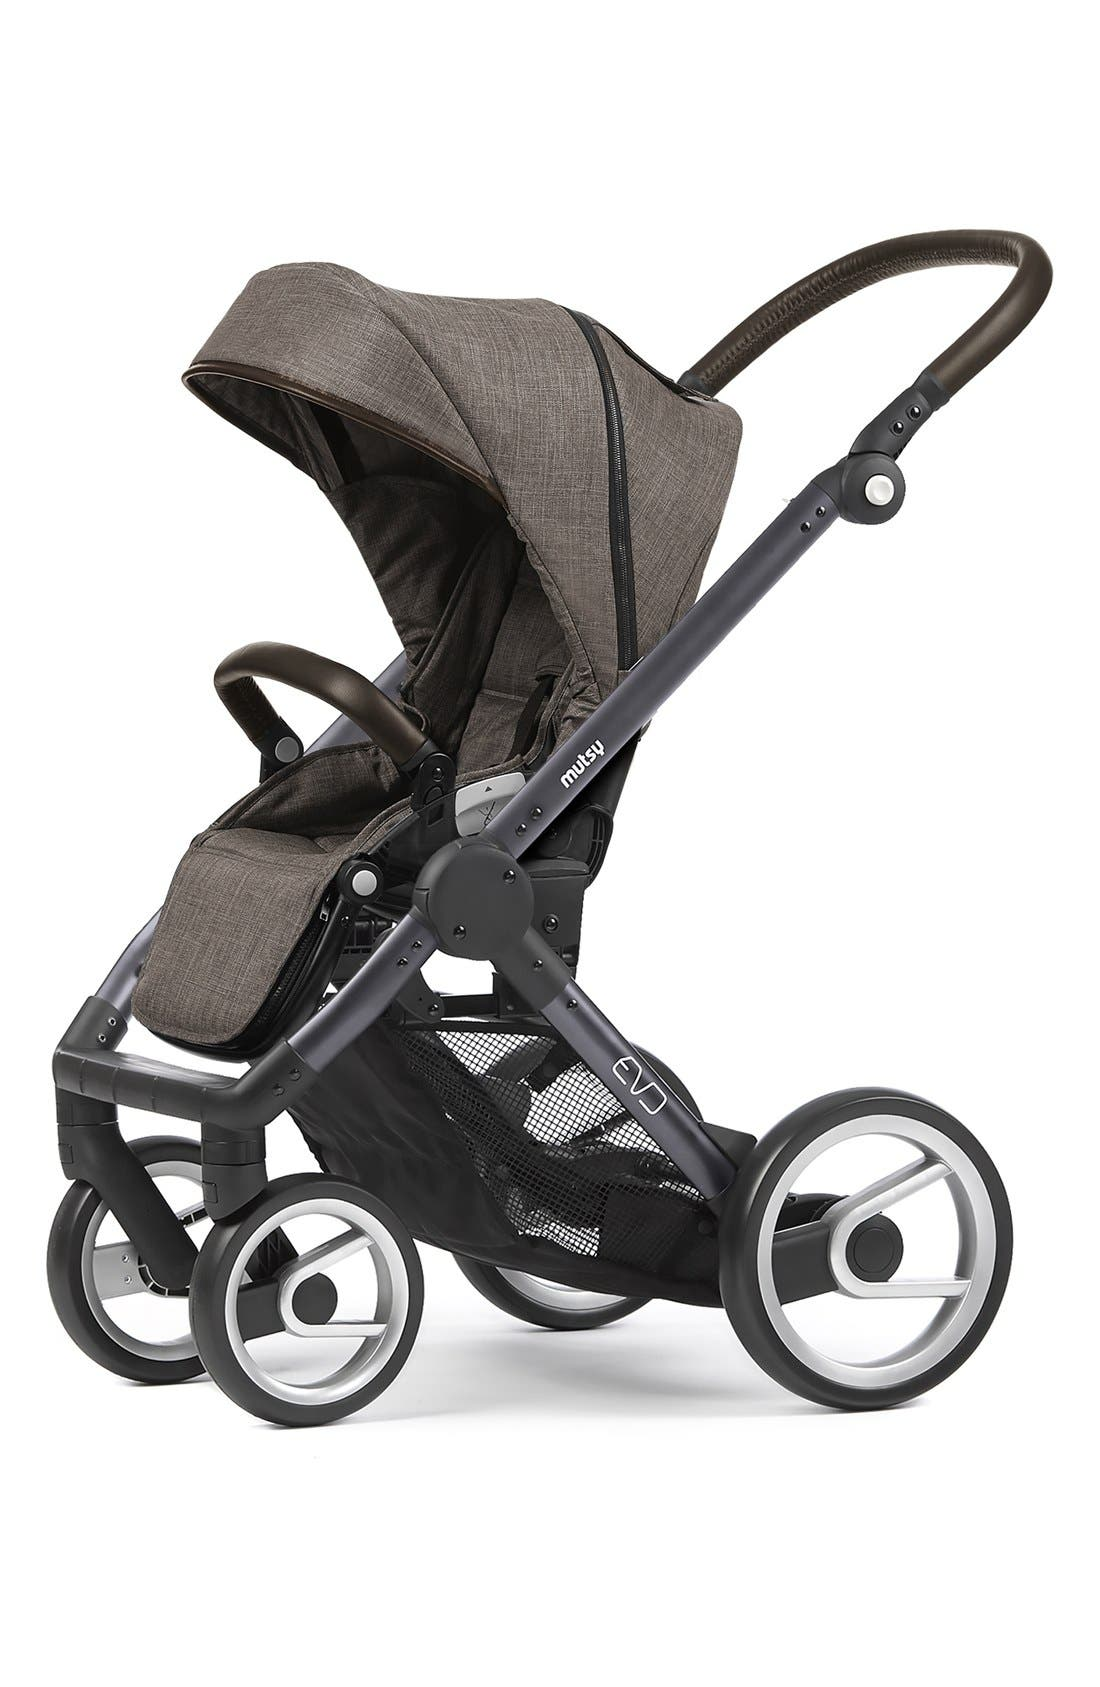 Evo - Farmer Earth Stroller,                             Alternate thumbnail 4, color,                             Brown/ Dark Grey